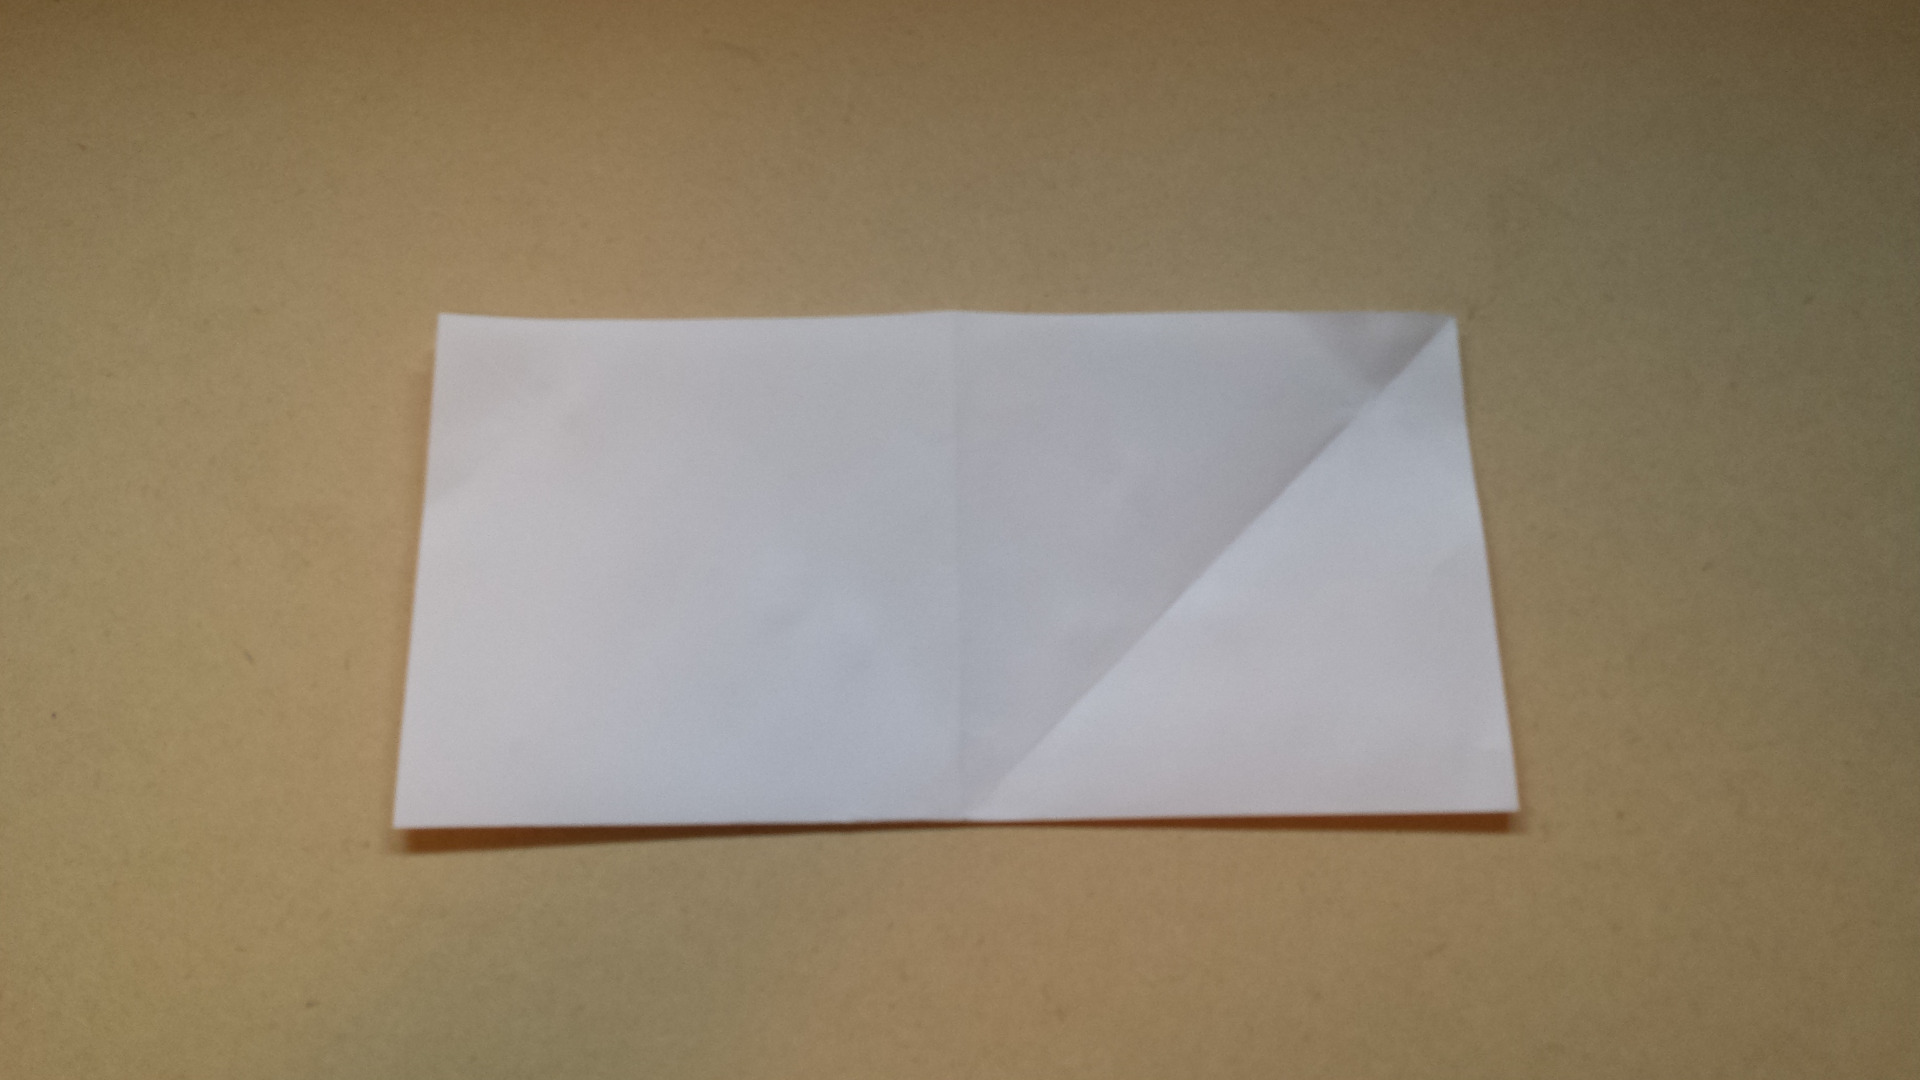 Picture of Fold in Half Length-wise One Direction, Unfold, Then Fold in Half Length-wise the Other Direction